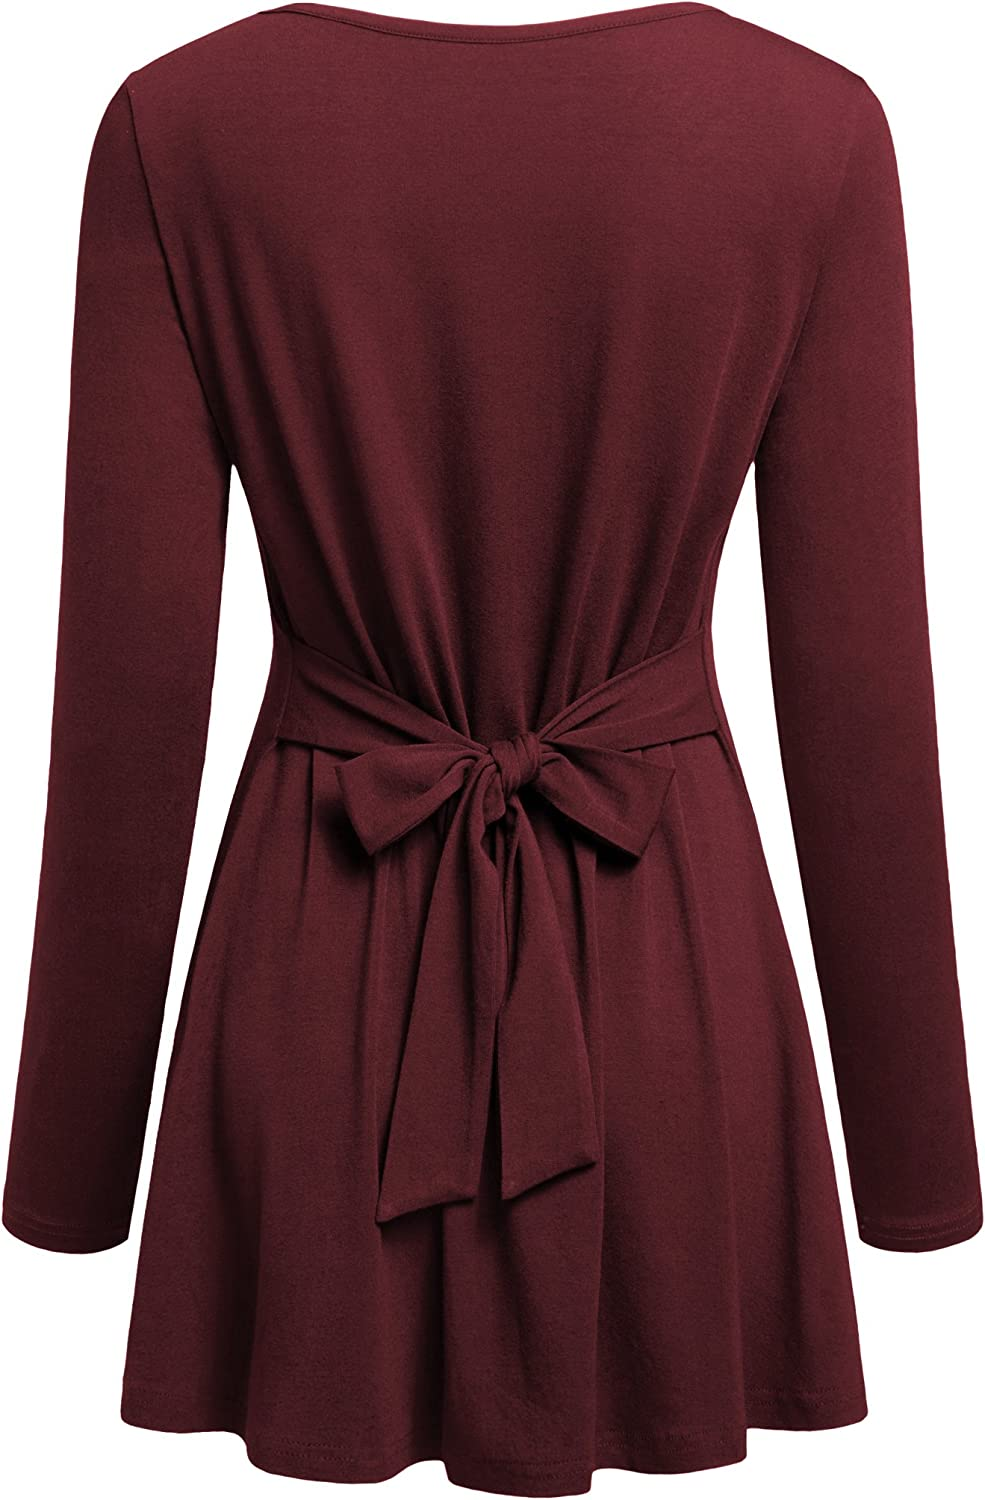 Lem&Hao Women Pleated Long Sleeves Scoop Neck Shirt Back Knot Casual Tunic Tops